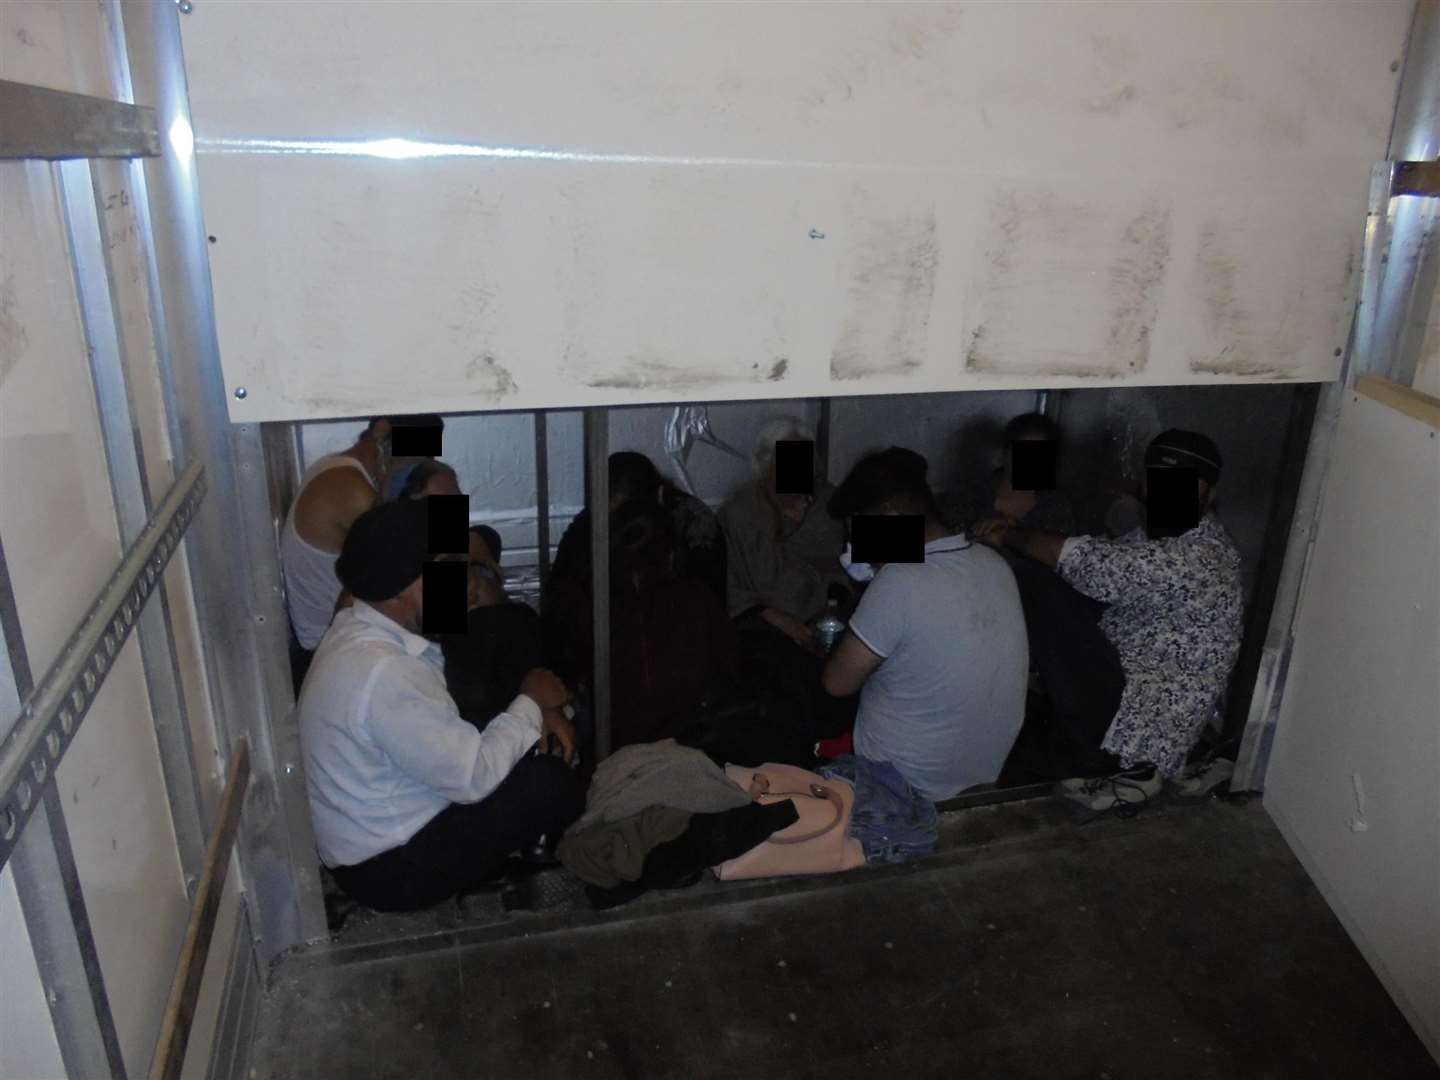 The hide exposed showing some of the people concealed inside. Picture: Home Office